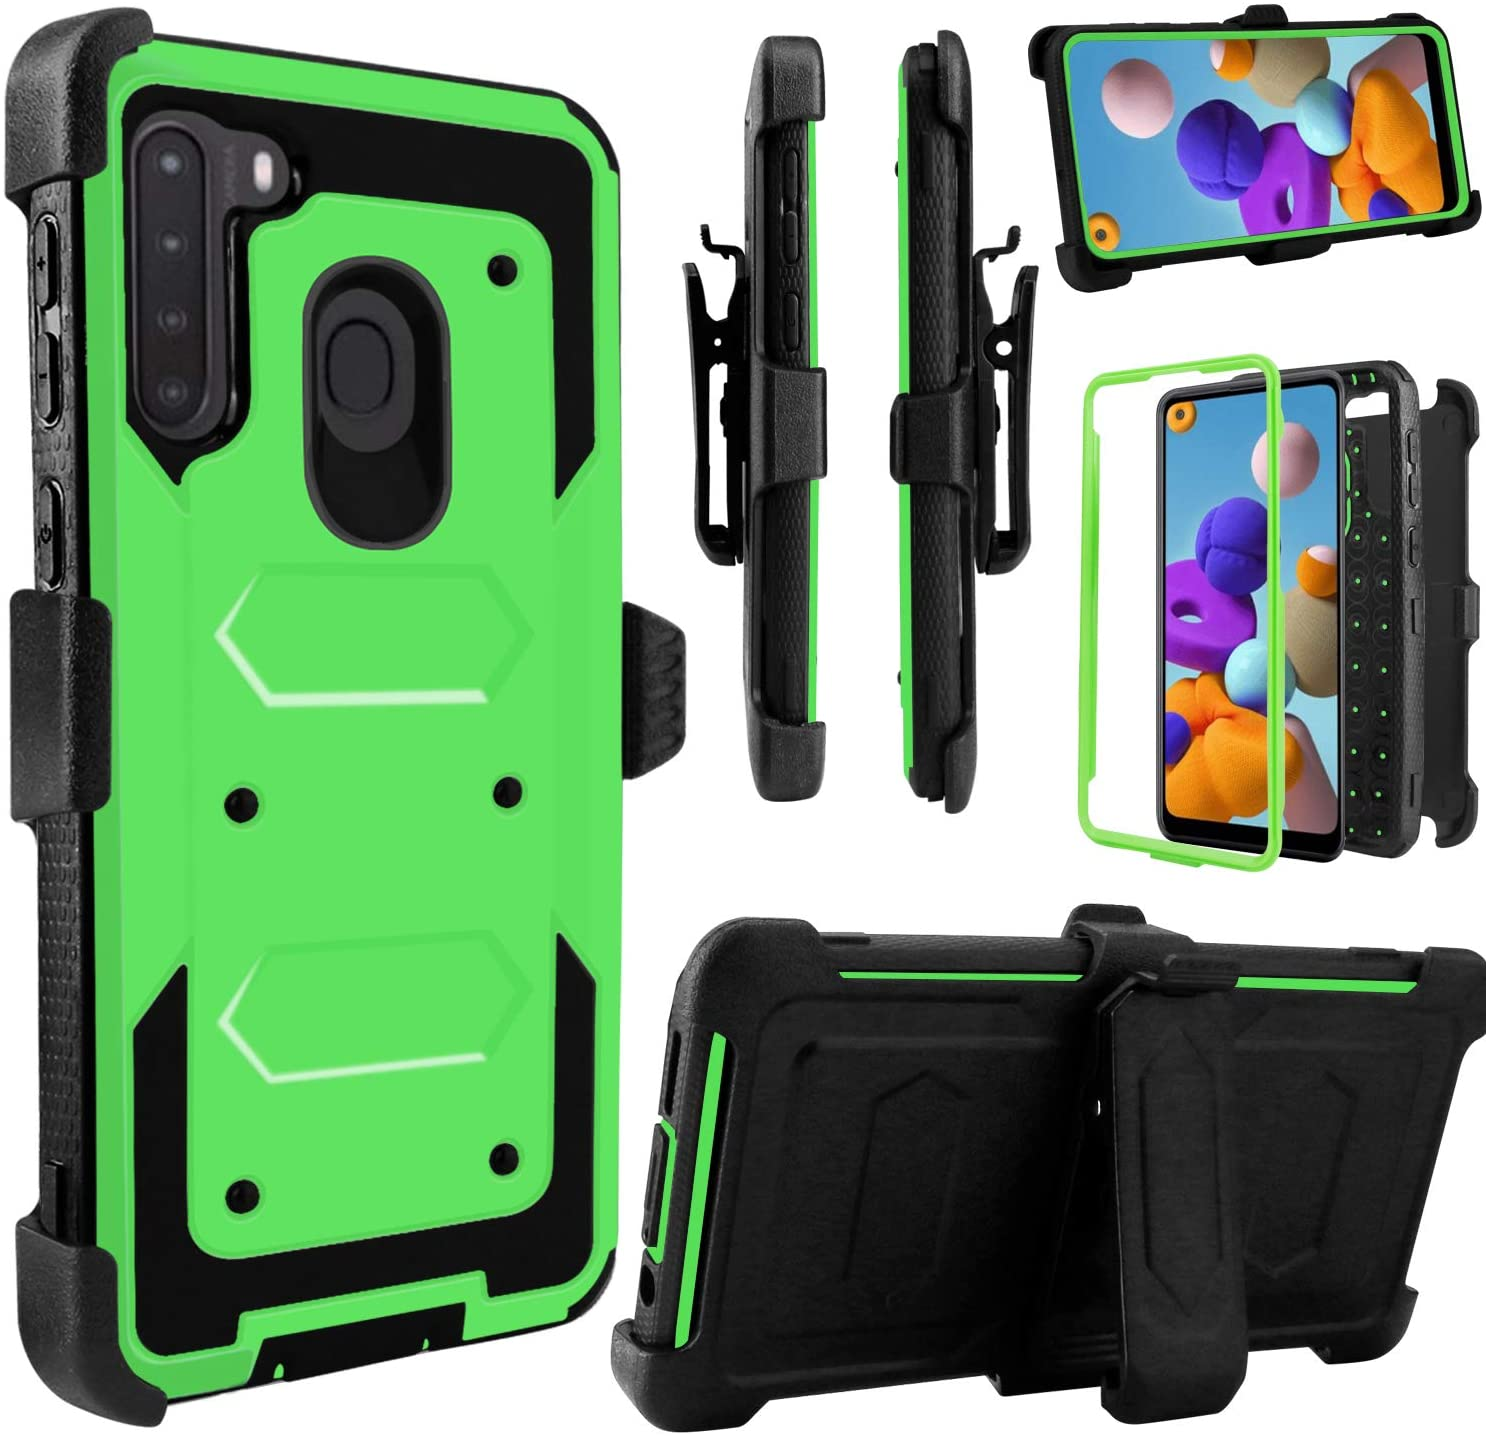 Venoro Galaxy A21 Case, Kickstand Case Heavy Duty Shockproof Full Body Protection Case Cover with Swivel Belt Clip for Samsung Galaxy A21 6.5inch (Green)